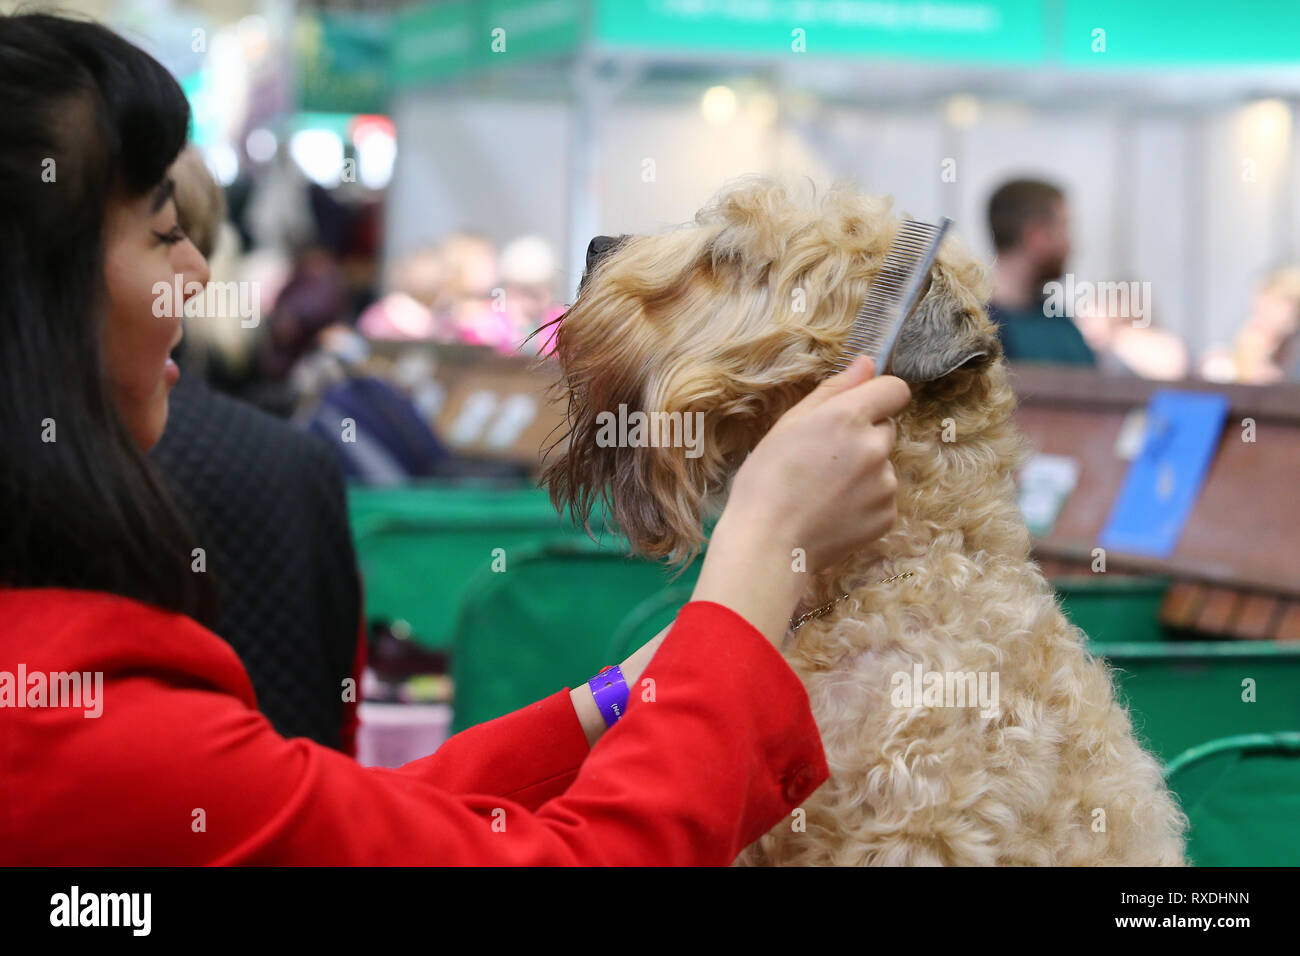 Birmingham, UK. 9th March, 2019. A terrier receives a last minute comb before the show. Credit: Peter Lopeman/Alamy Live News - Stock Image